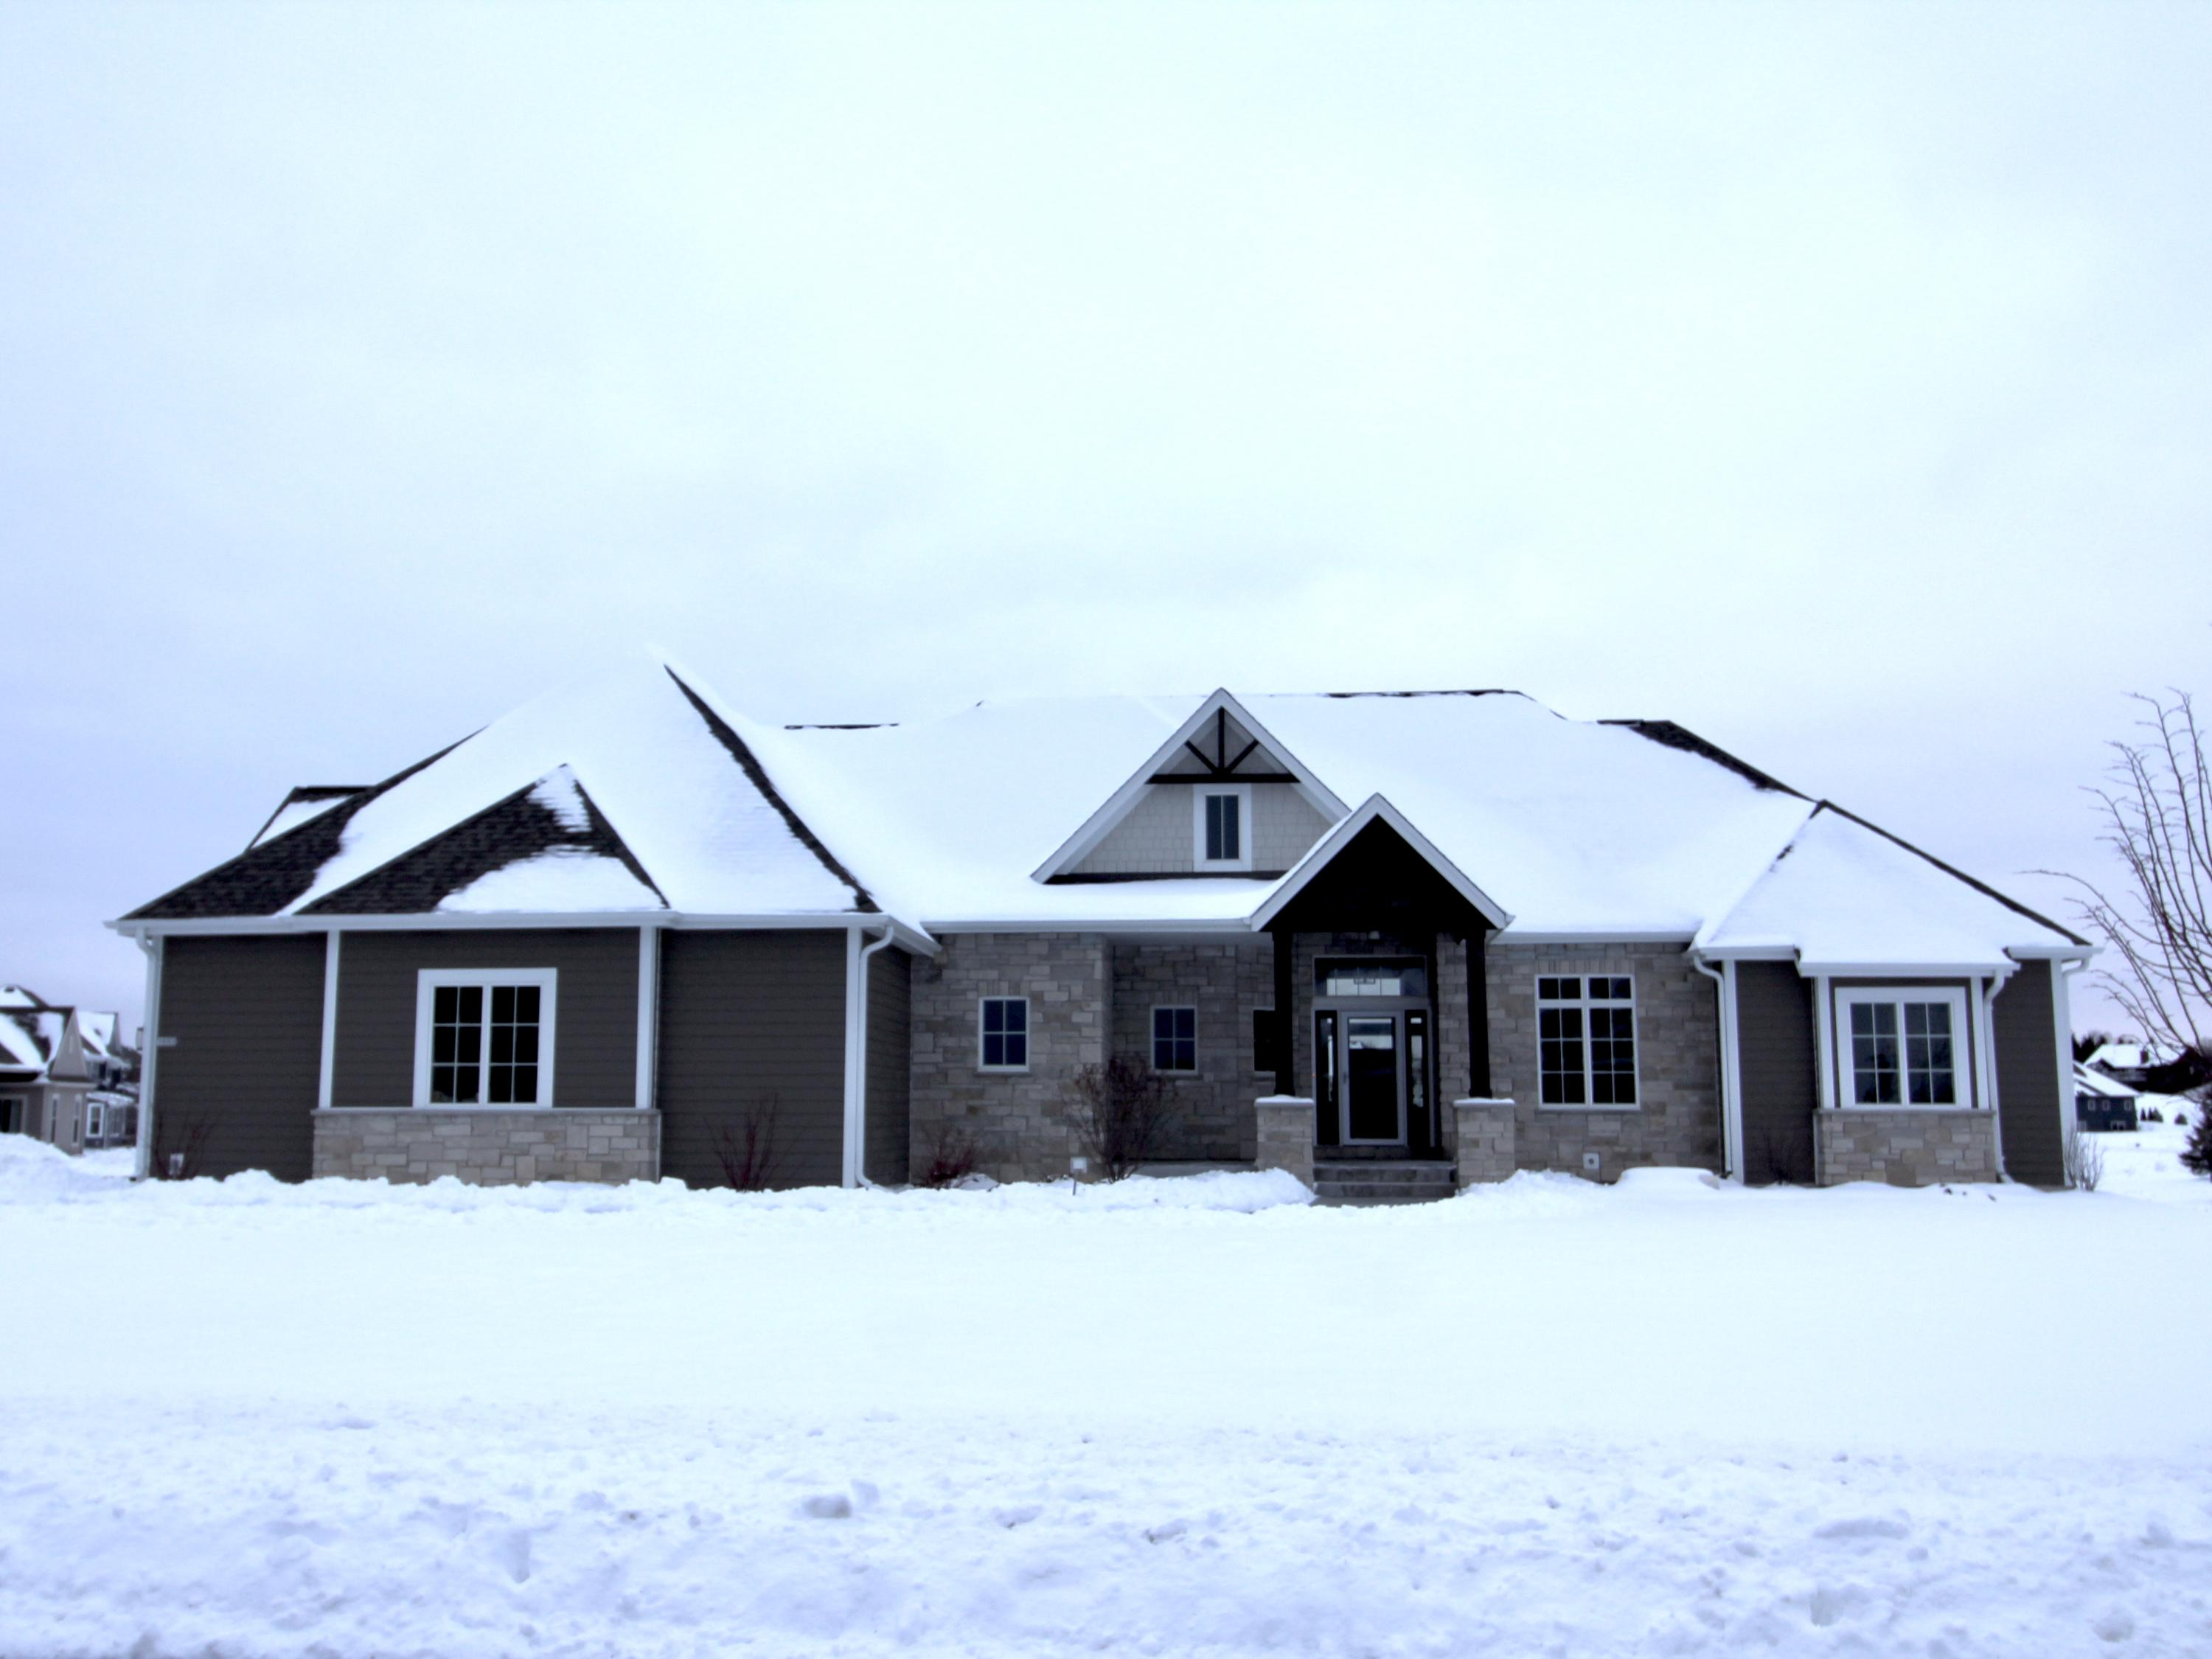 1653 Whistling Hill Cir, Hartland, Wisconsin 53029, 5 Bedrooms Bedrooms, 13 Rooms Rooms,3 BathroomsBathrooms,Single-Family,For Sale,Whistling Hill Cir,1723523